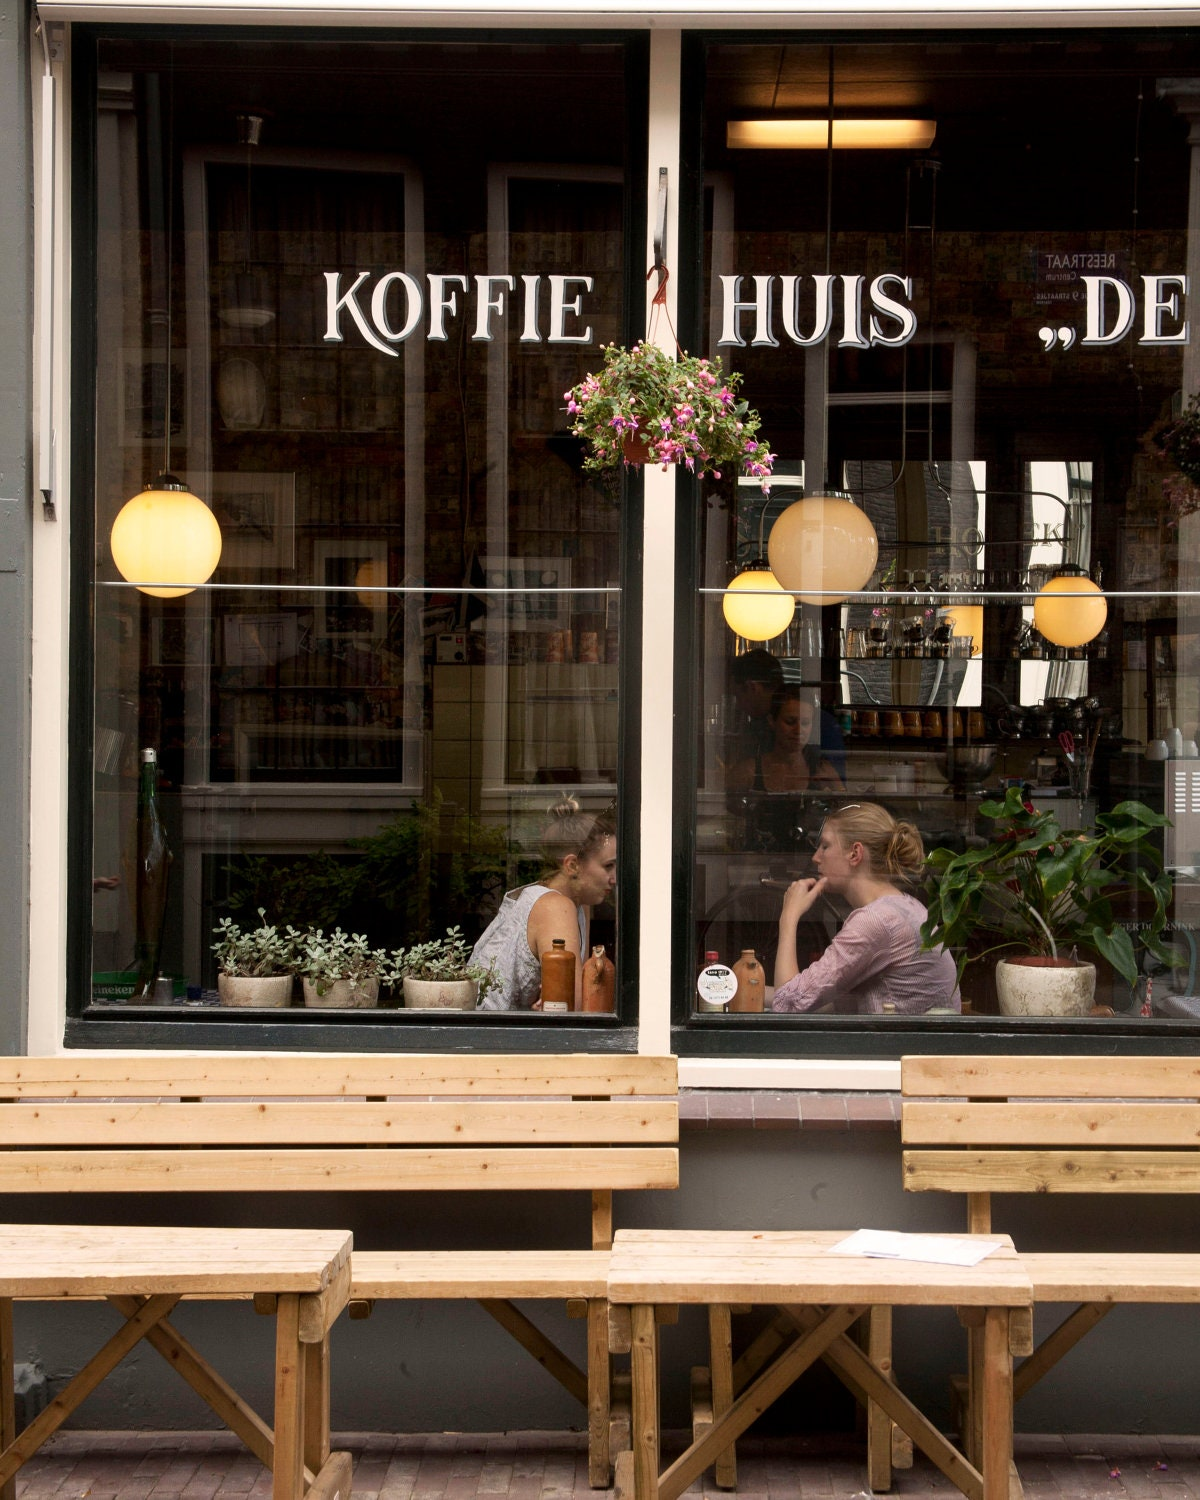 Extra Large Wall Art-Cafe Culture Amsterdam-Koffie Huis-A